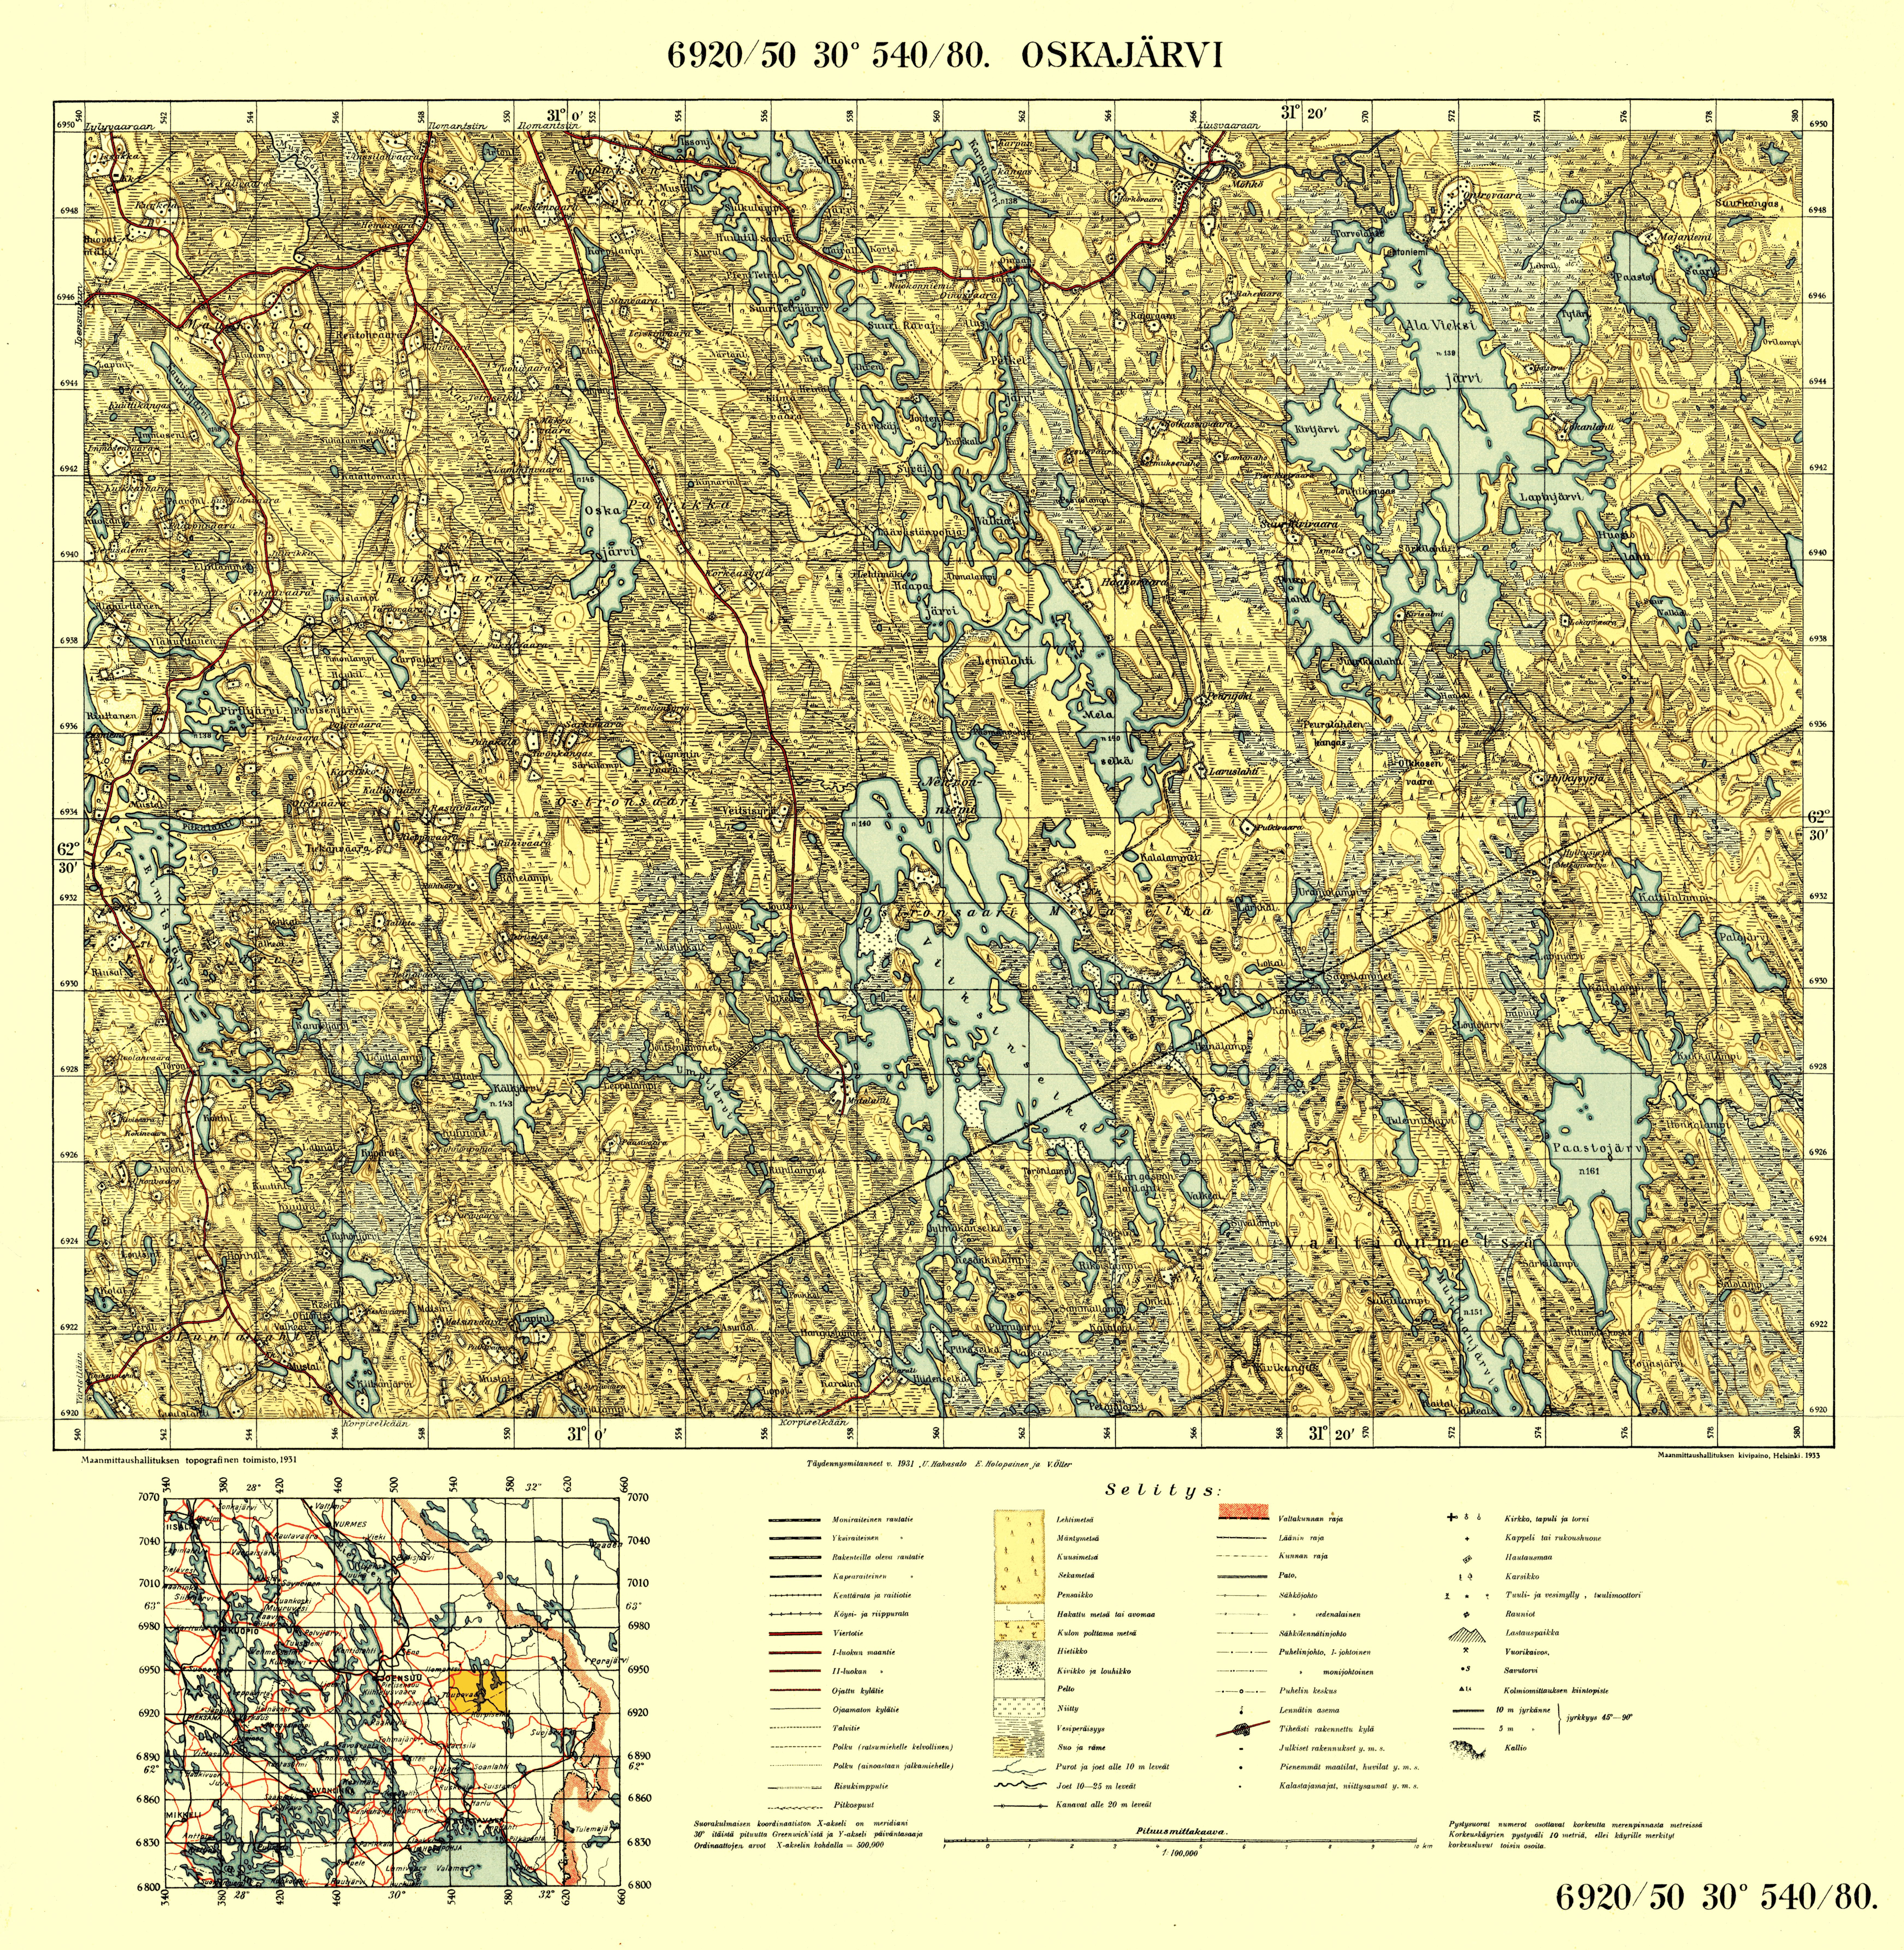 Old map of Imatra and close surrounding in 1945 Buy vintage map